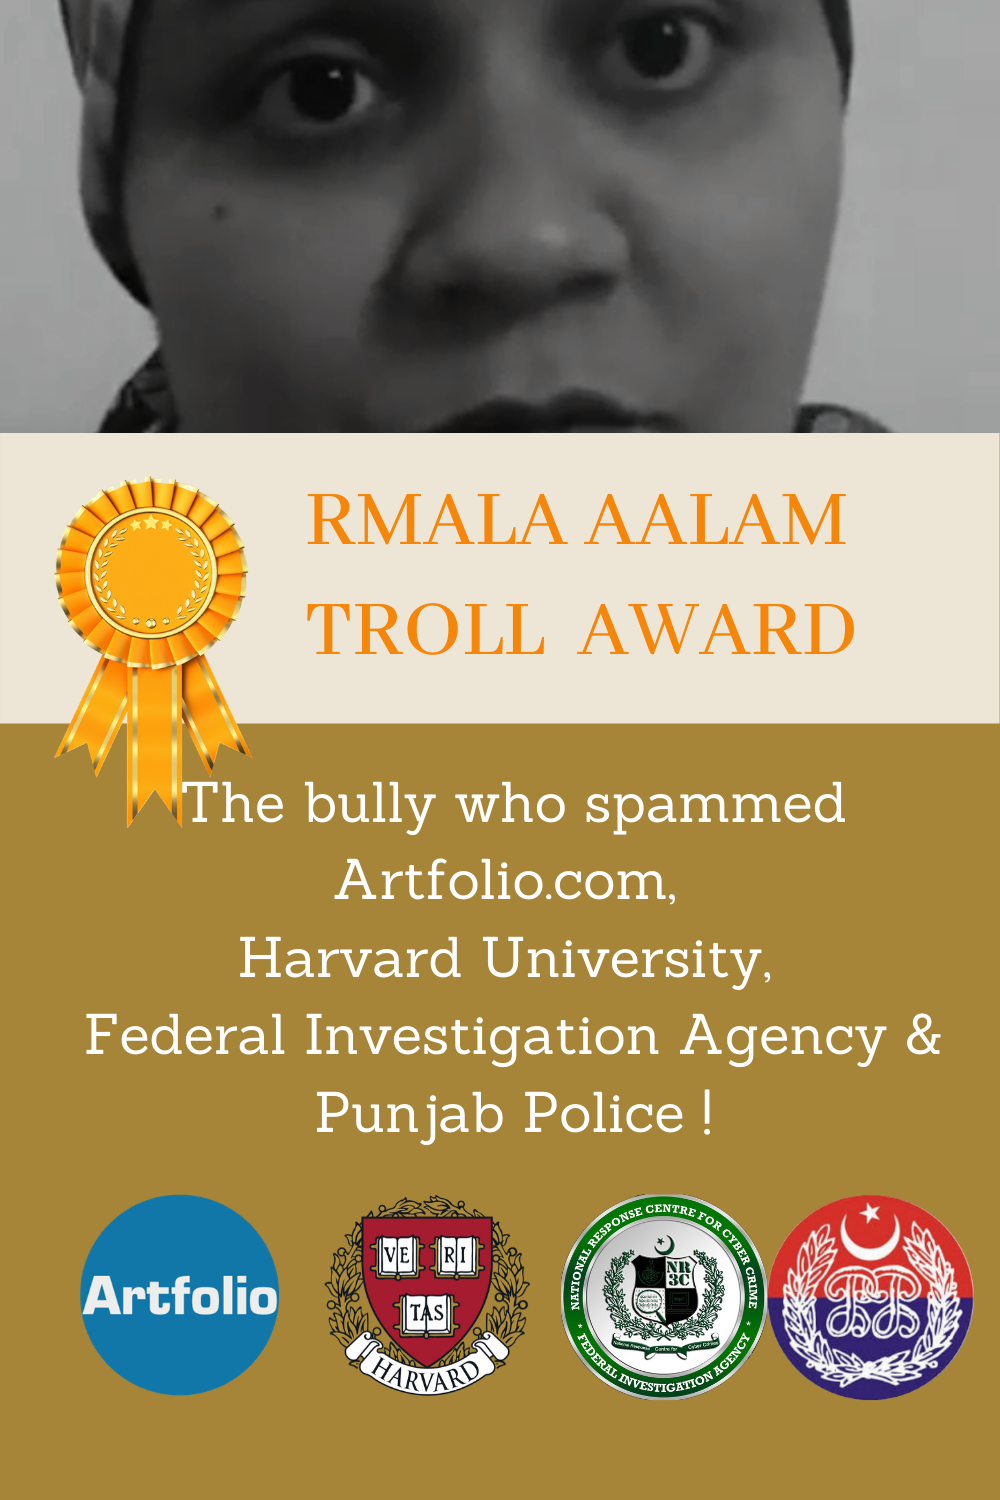 Last week was a great one for @GruaAbuseArkive. Ms Ramla Akhtar, aka Rmala Aalam, manager of Betterbonds shop in Husseini, Gojal. Her psychopathic stalking reached summits. Let's look at her actions with Artfolio, Harvard University, Federal Investigation Agency and Punjab Police.